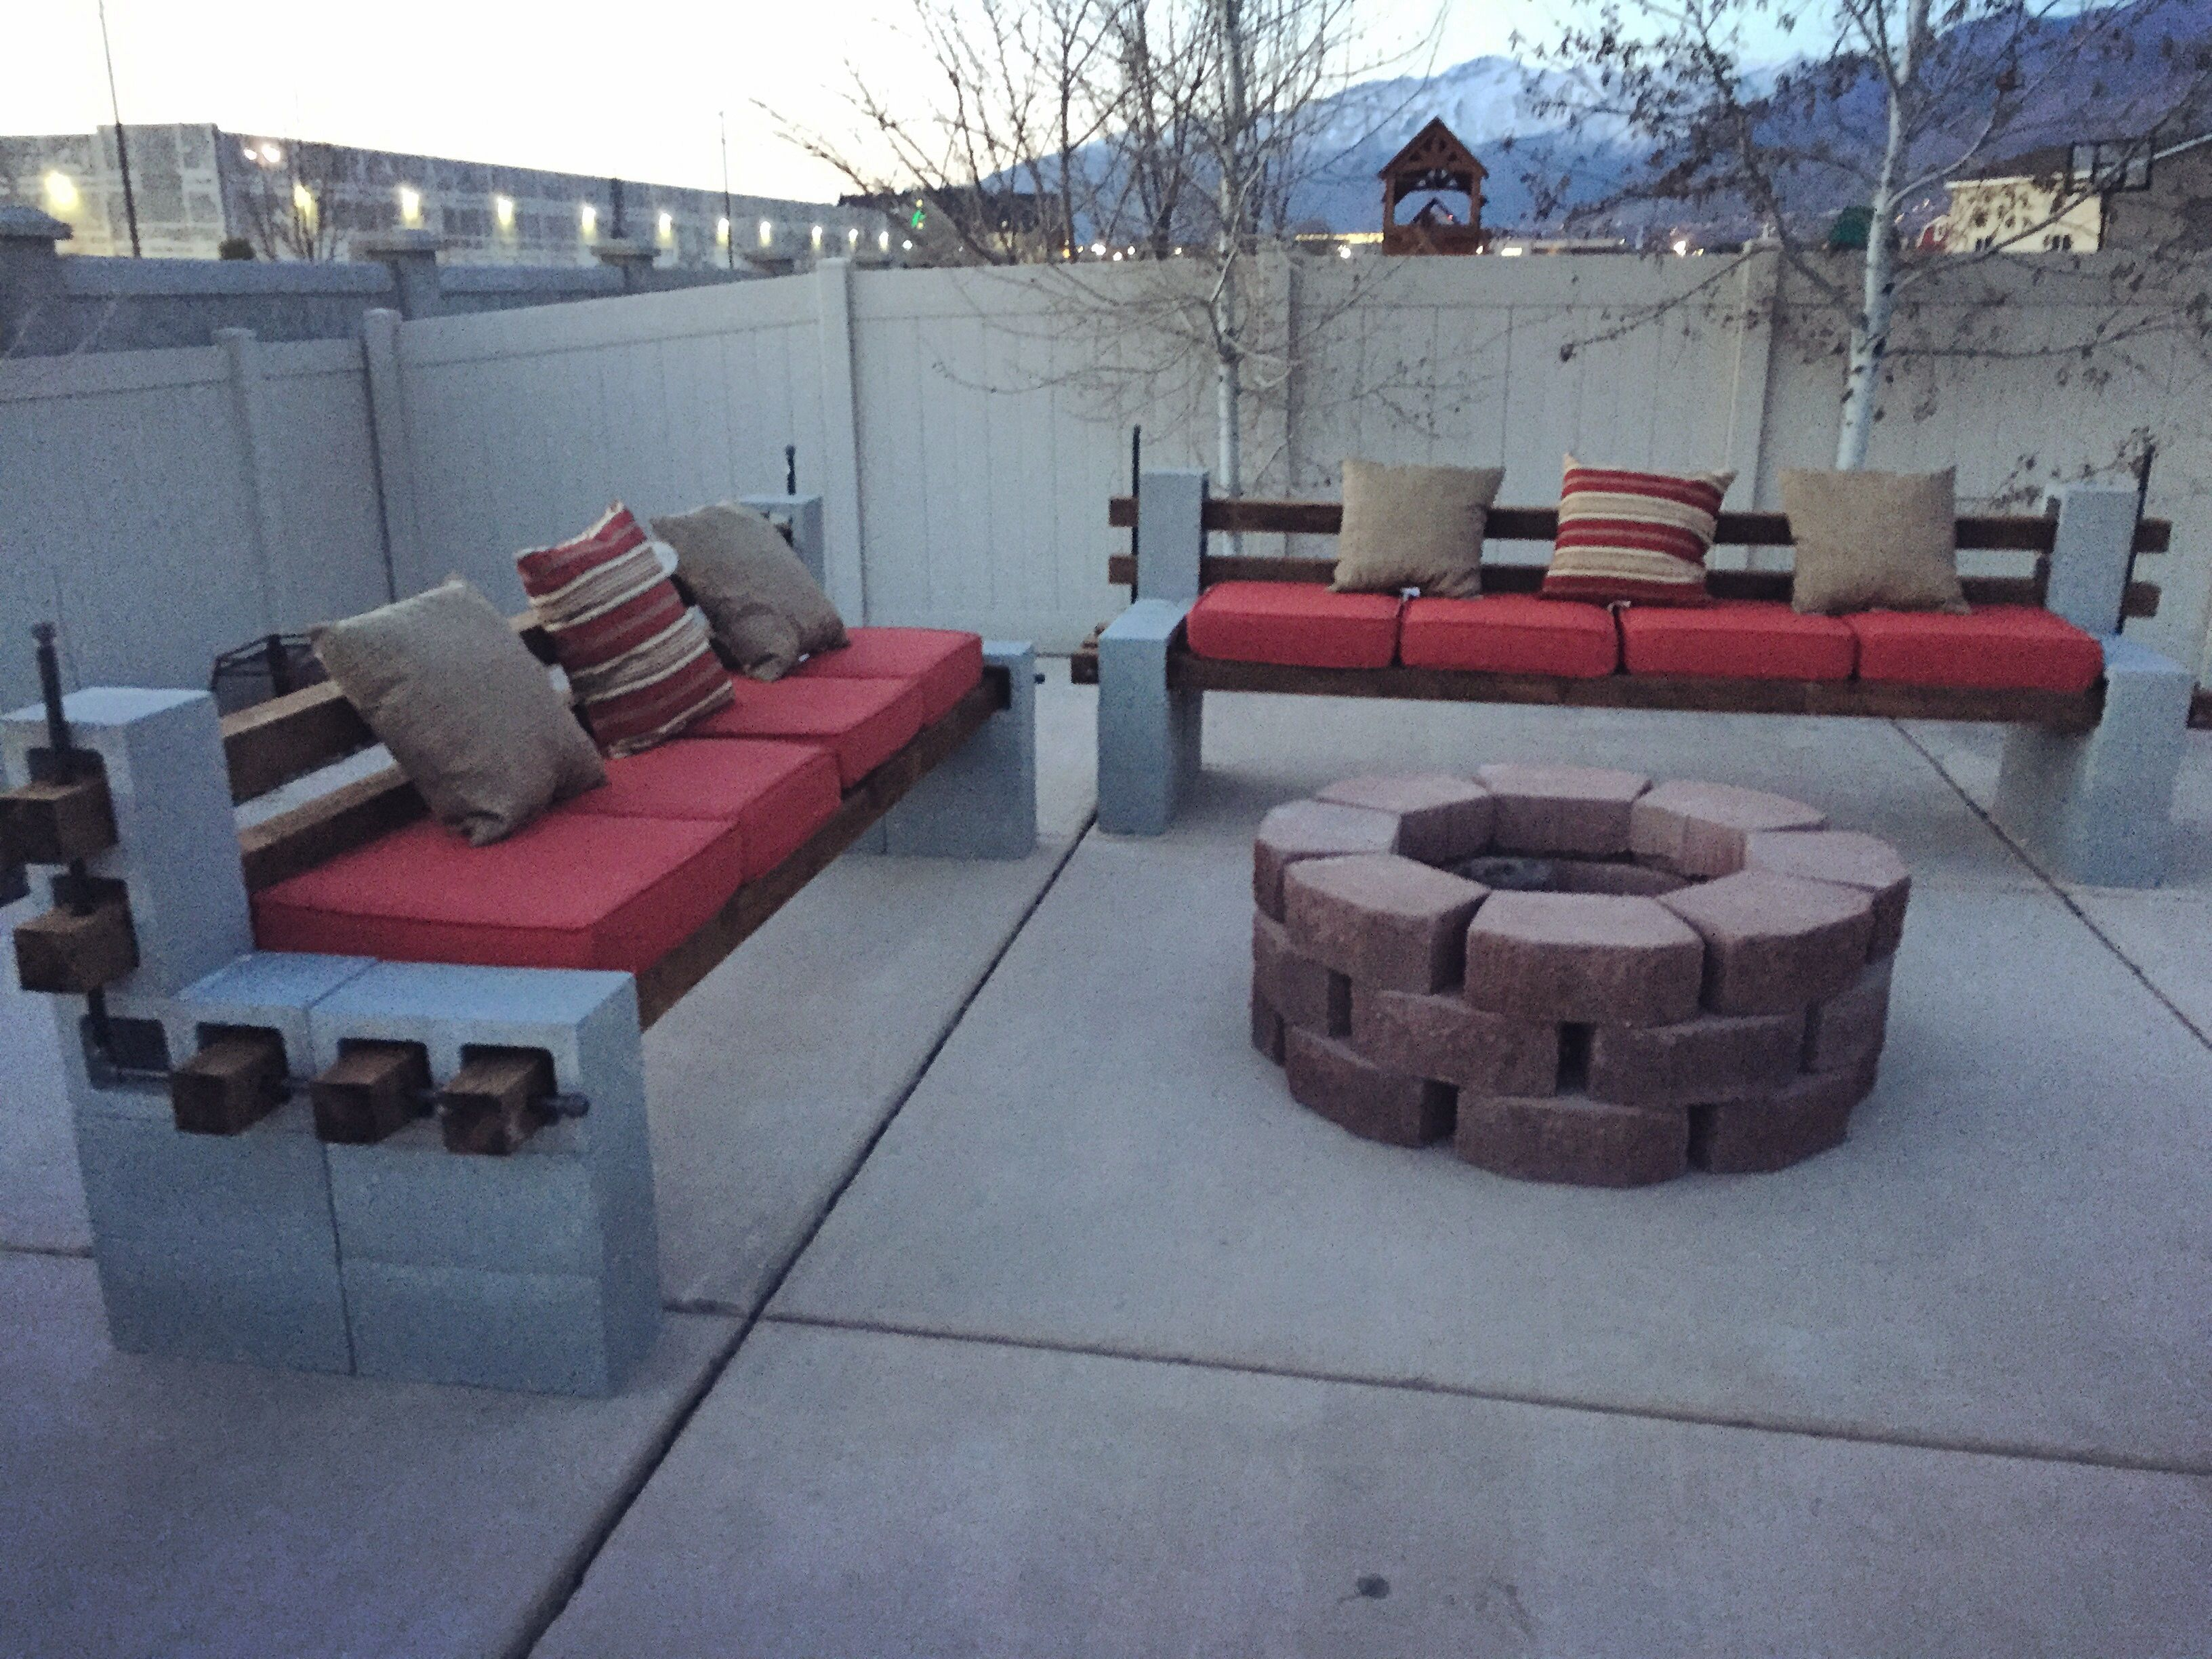 Diy we built outdoor benches and a firepit for a cozy backyard summer area cozy backyard - Types fire pits cozy outdoor spaces ...